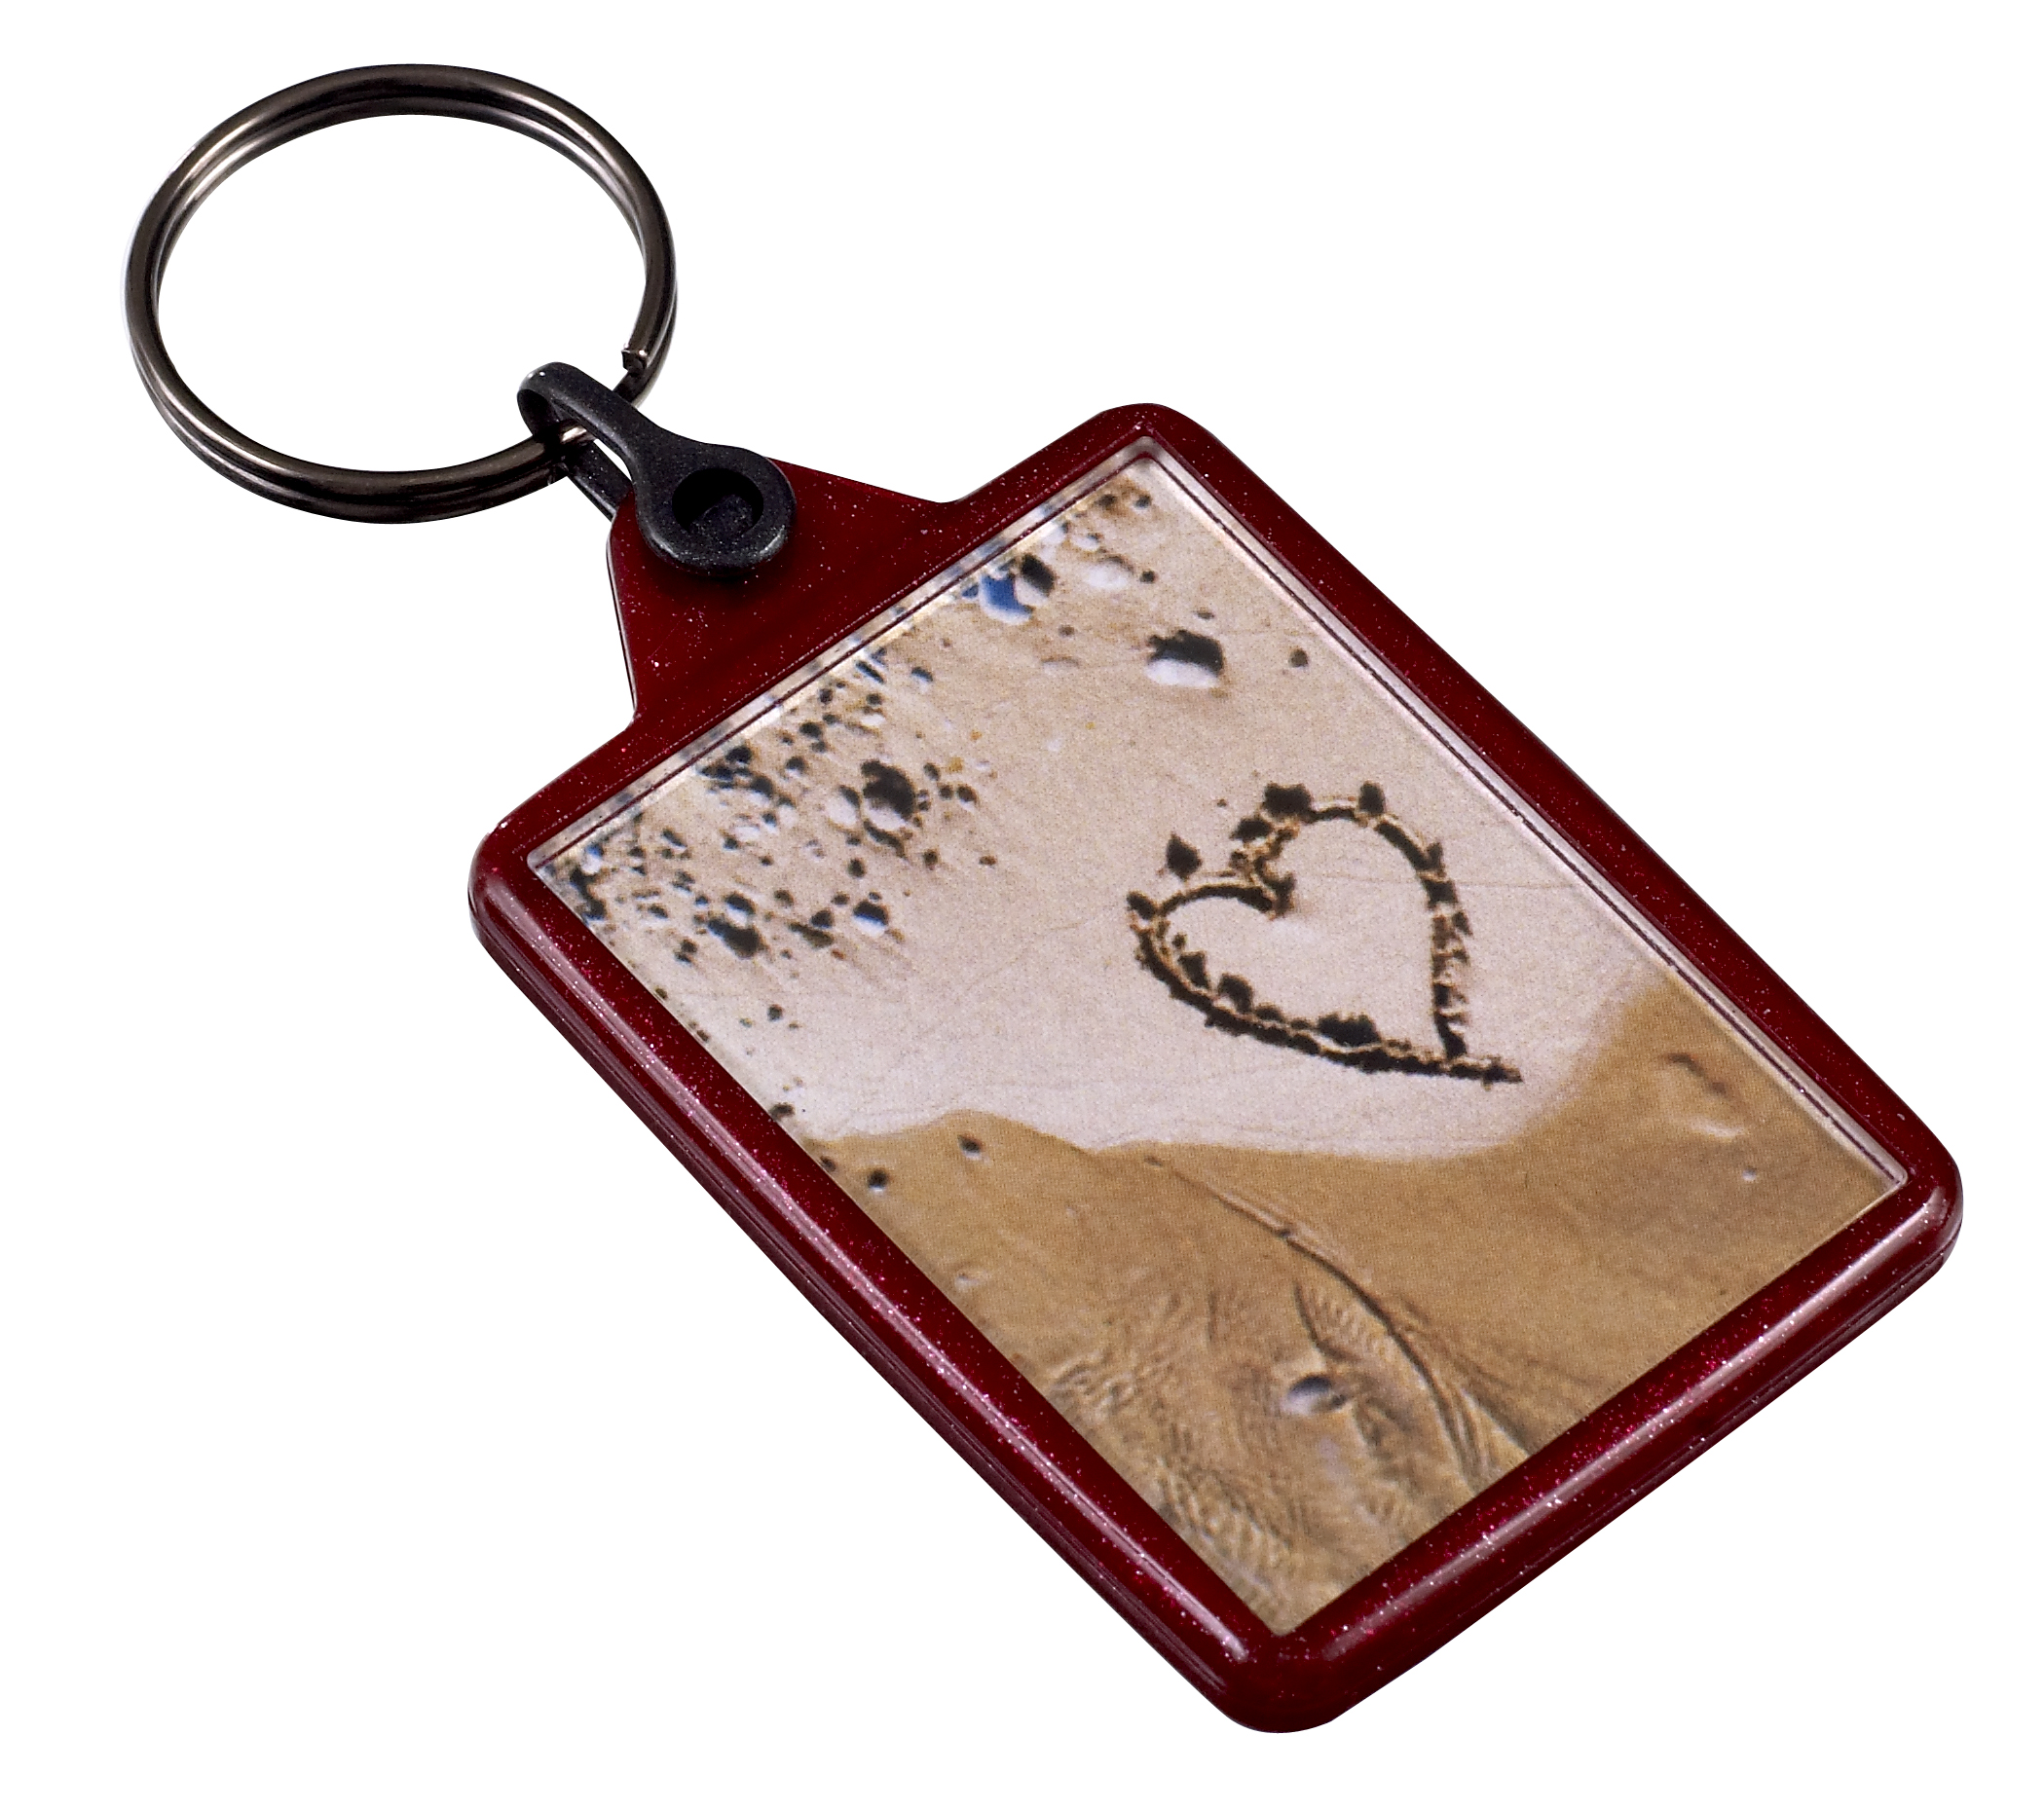 IL05 rececyled key ring in red